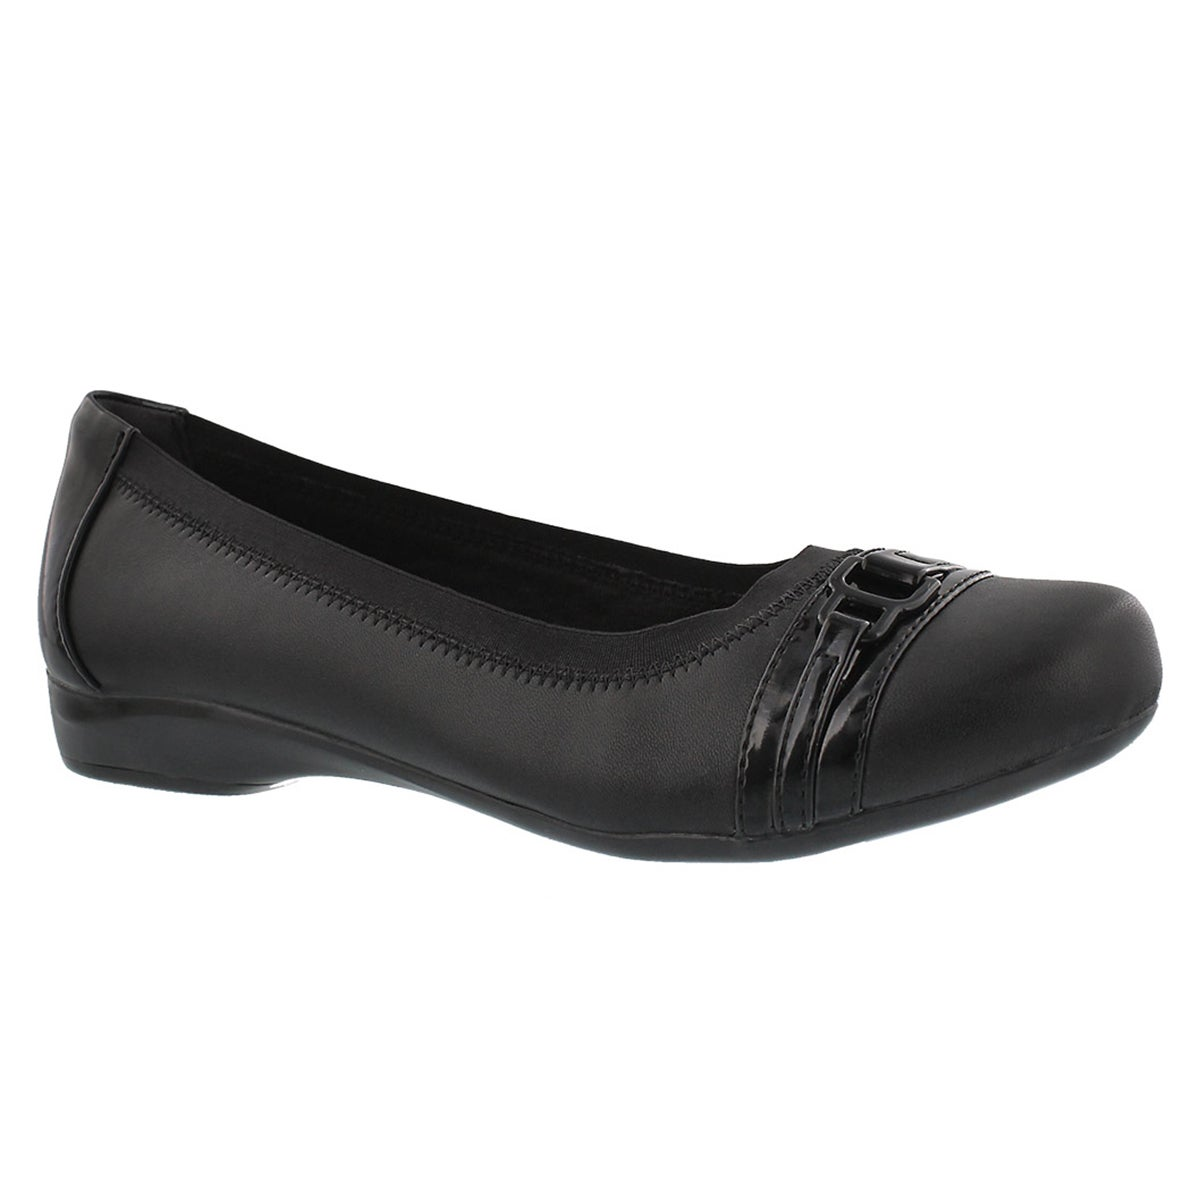 Women's KINZIE LIGHT black flats